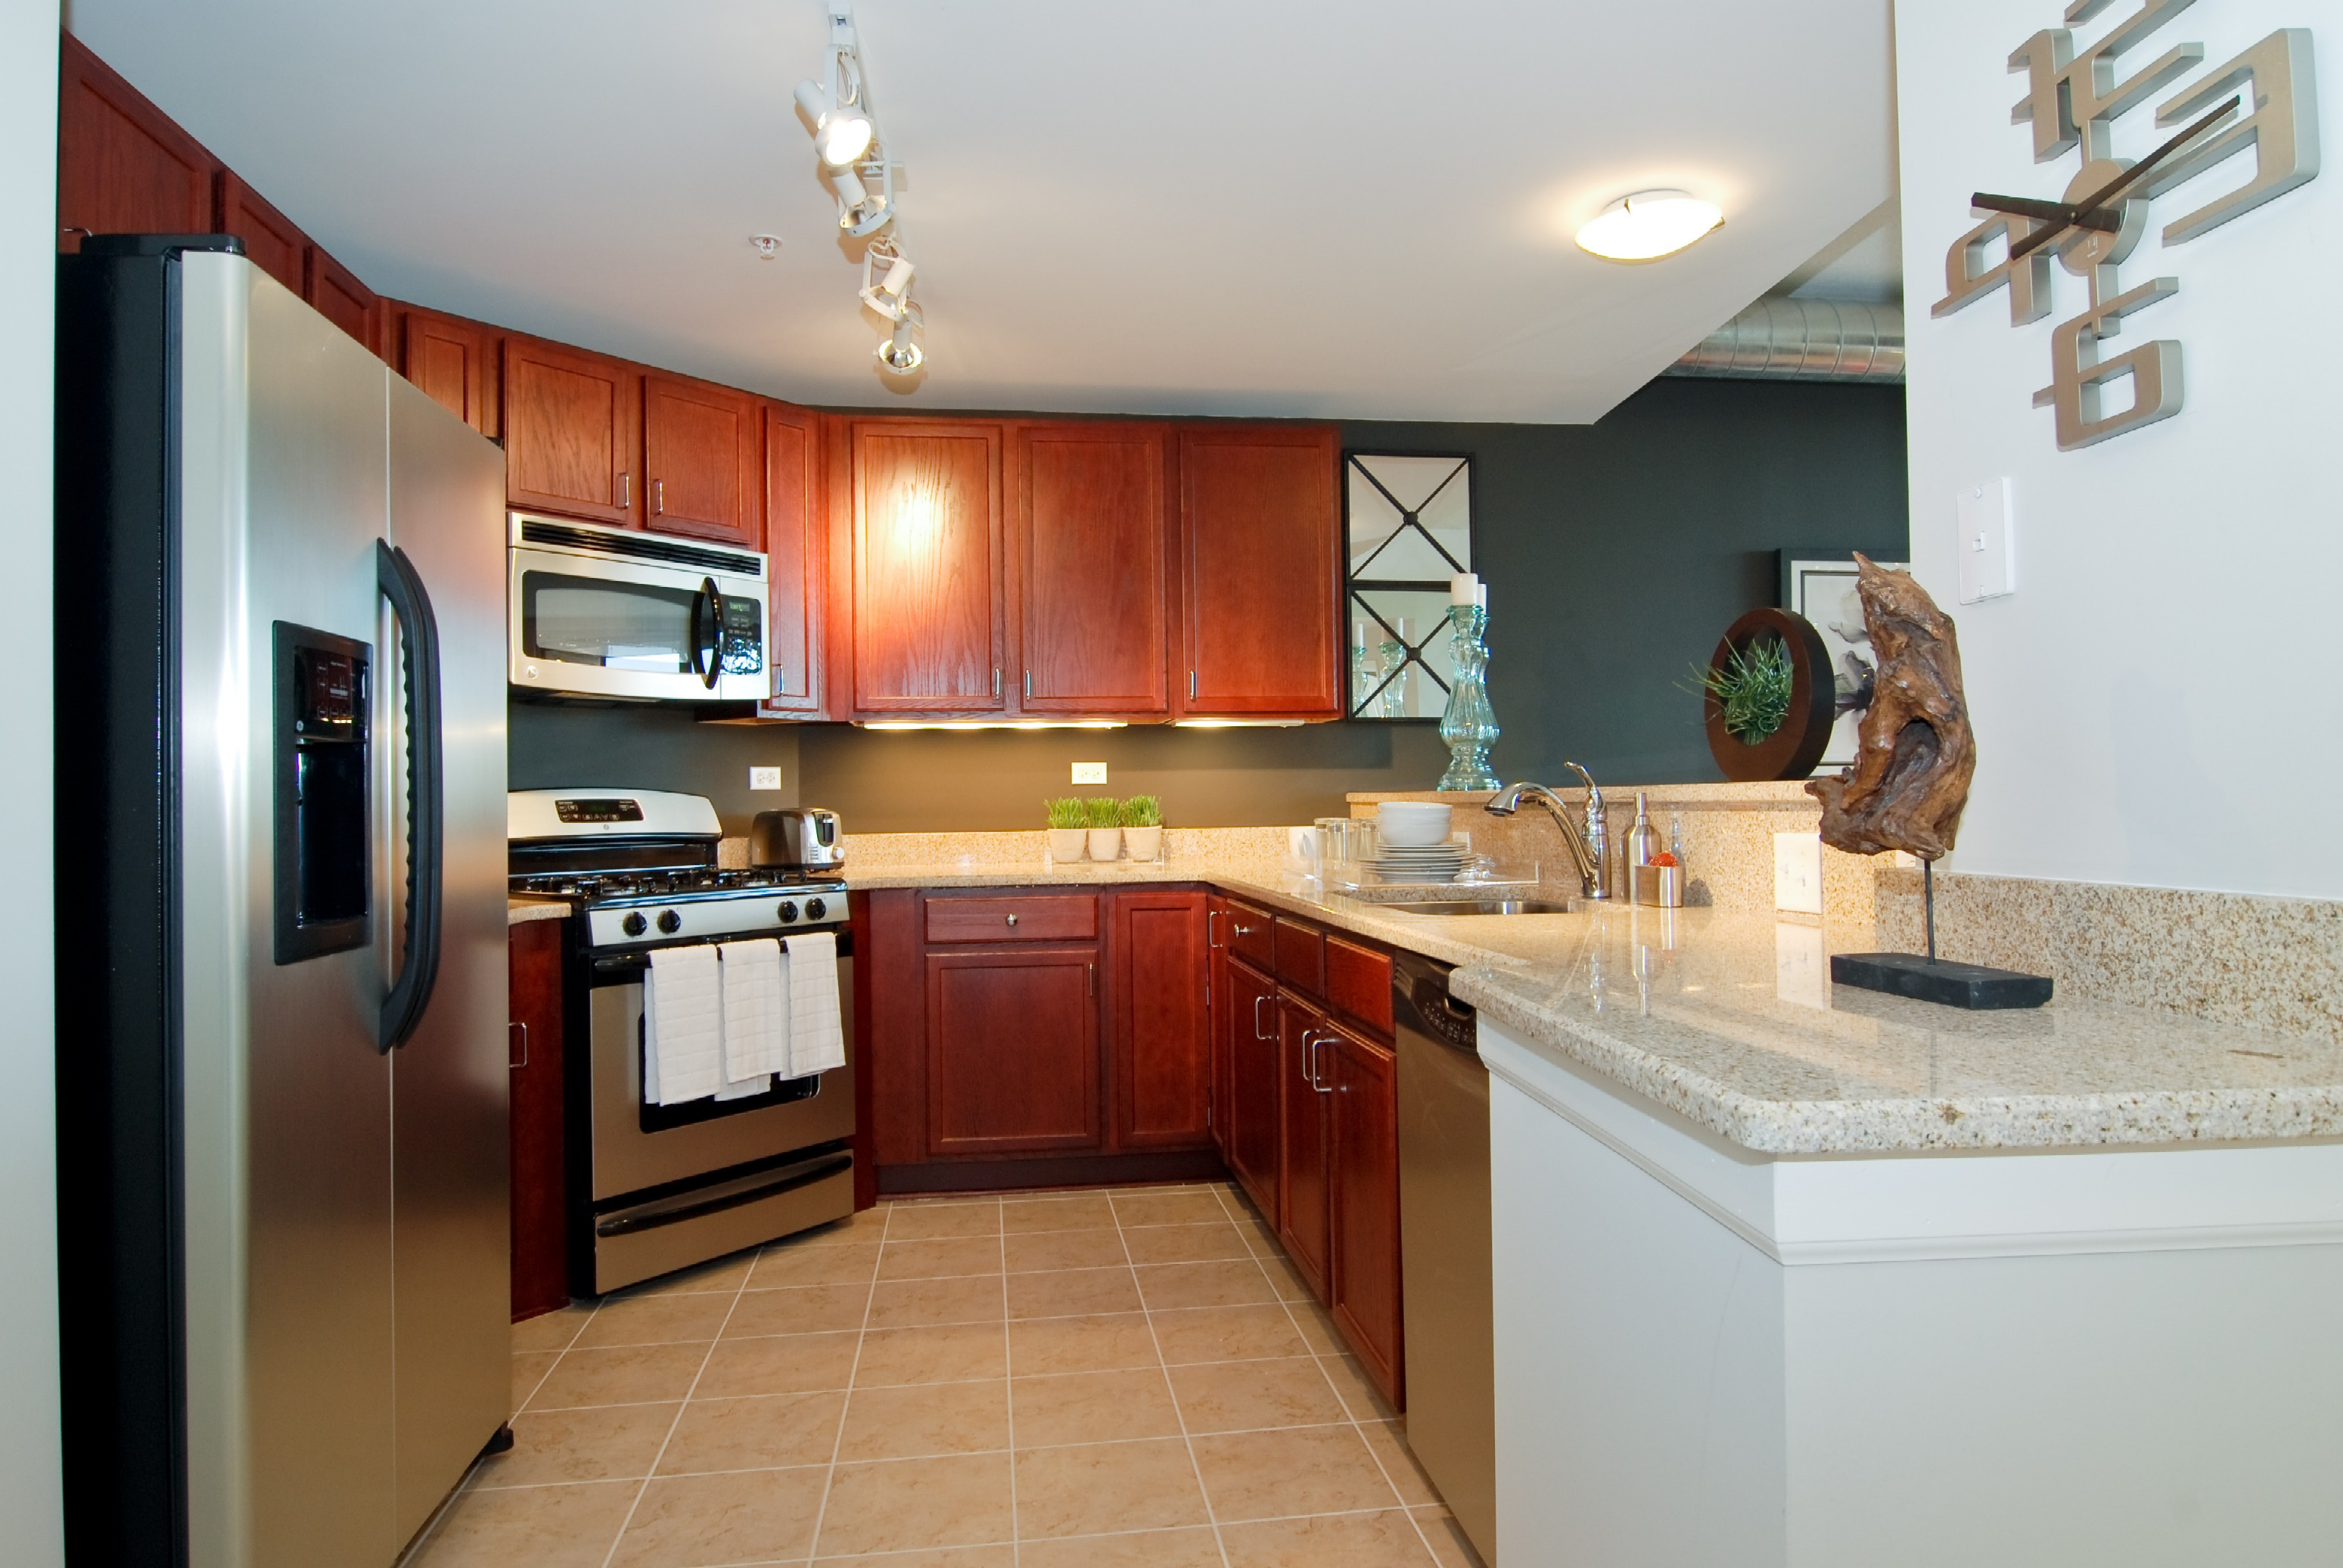 University housing options at Grand Bend in Evanston